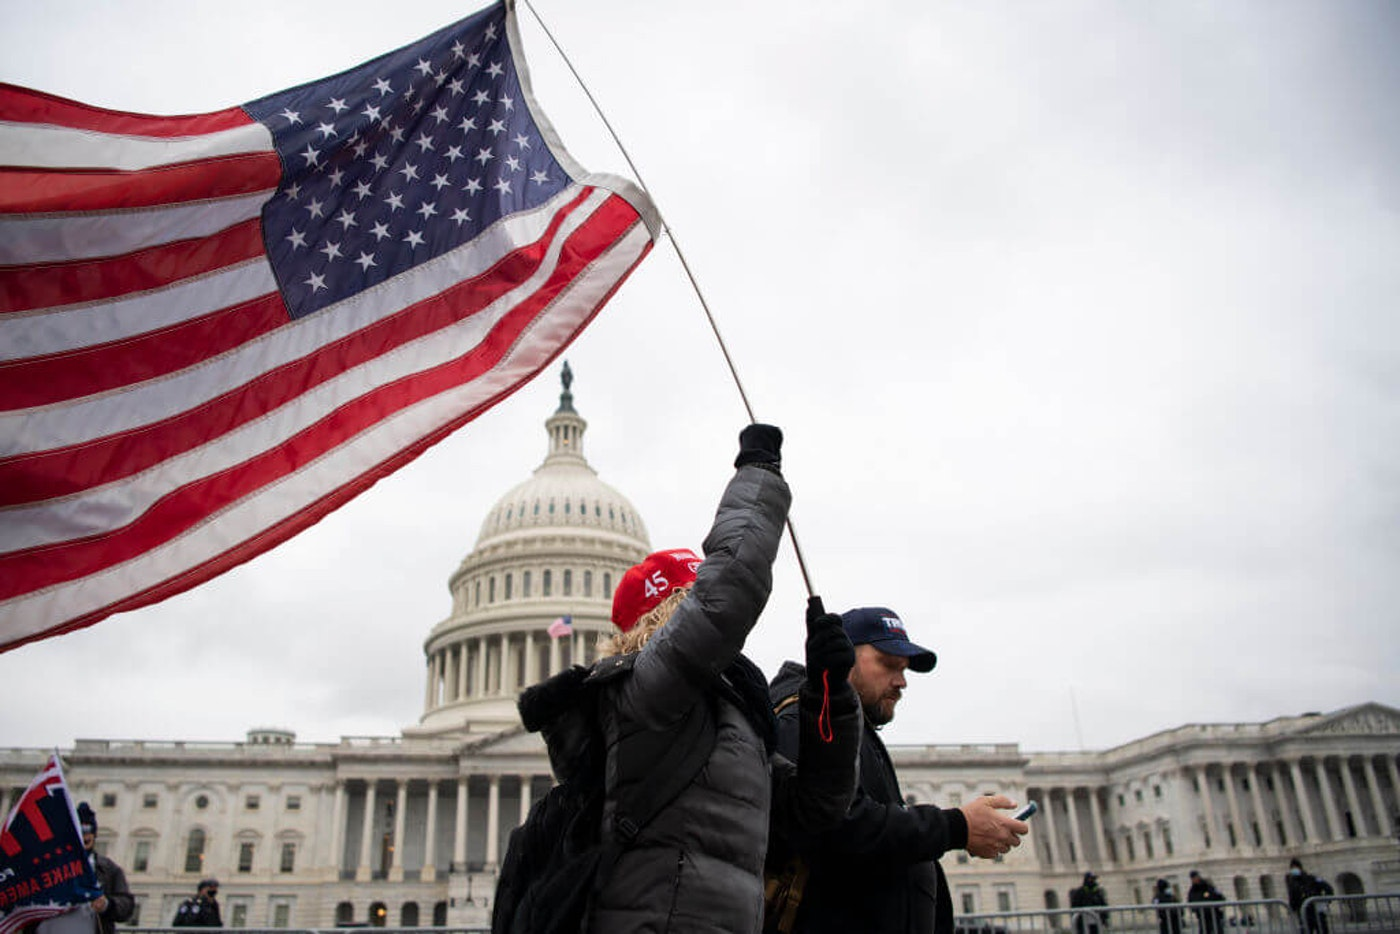 A demonstrator holds an American flag during a Trump rally along the East Front of the Capitol in Washington on Tuesday, Jan. 5, 2021. (Photo by Caroline Brehman/CQ-Roll Call, Inc via Getty Images)